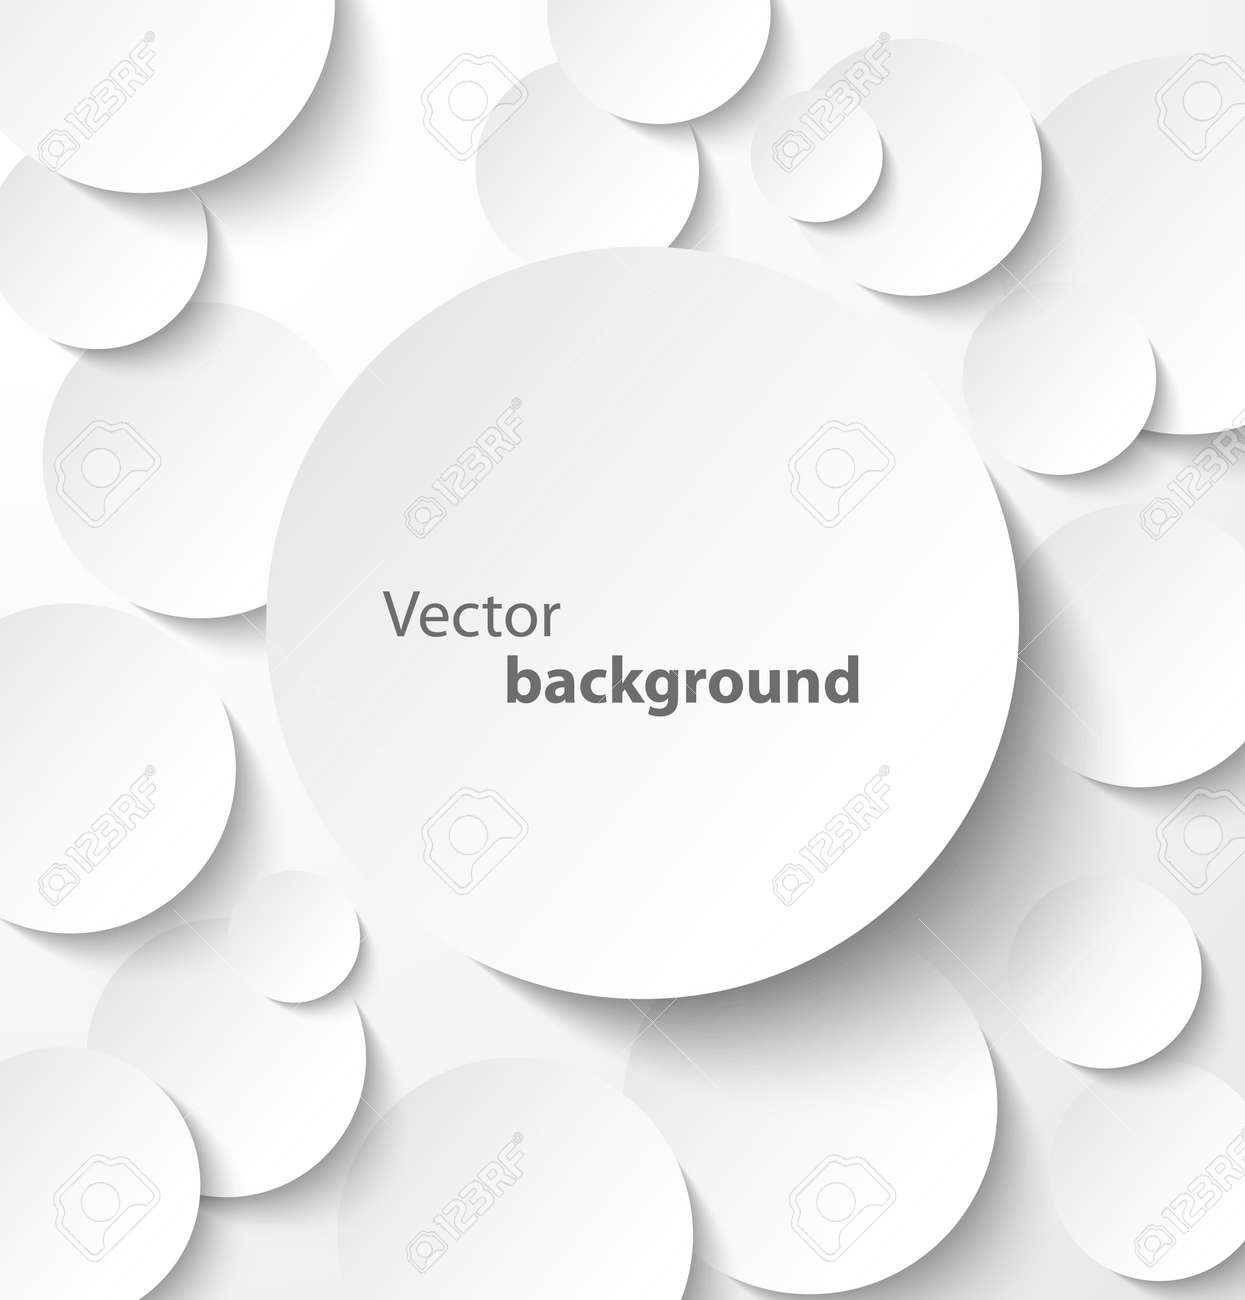 Paper circle banner with drop shadows on abstract background Vector illustration - 16509870